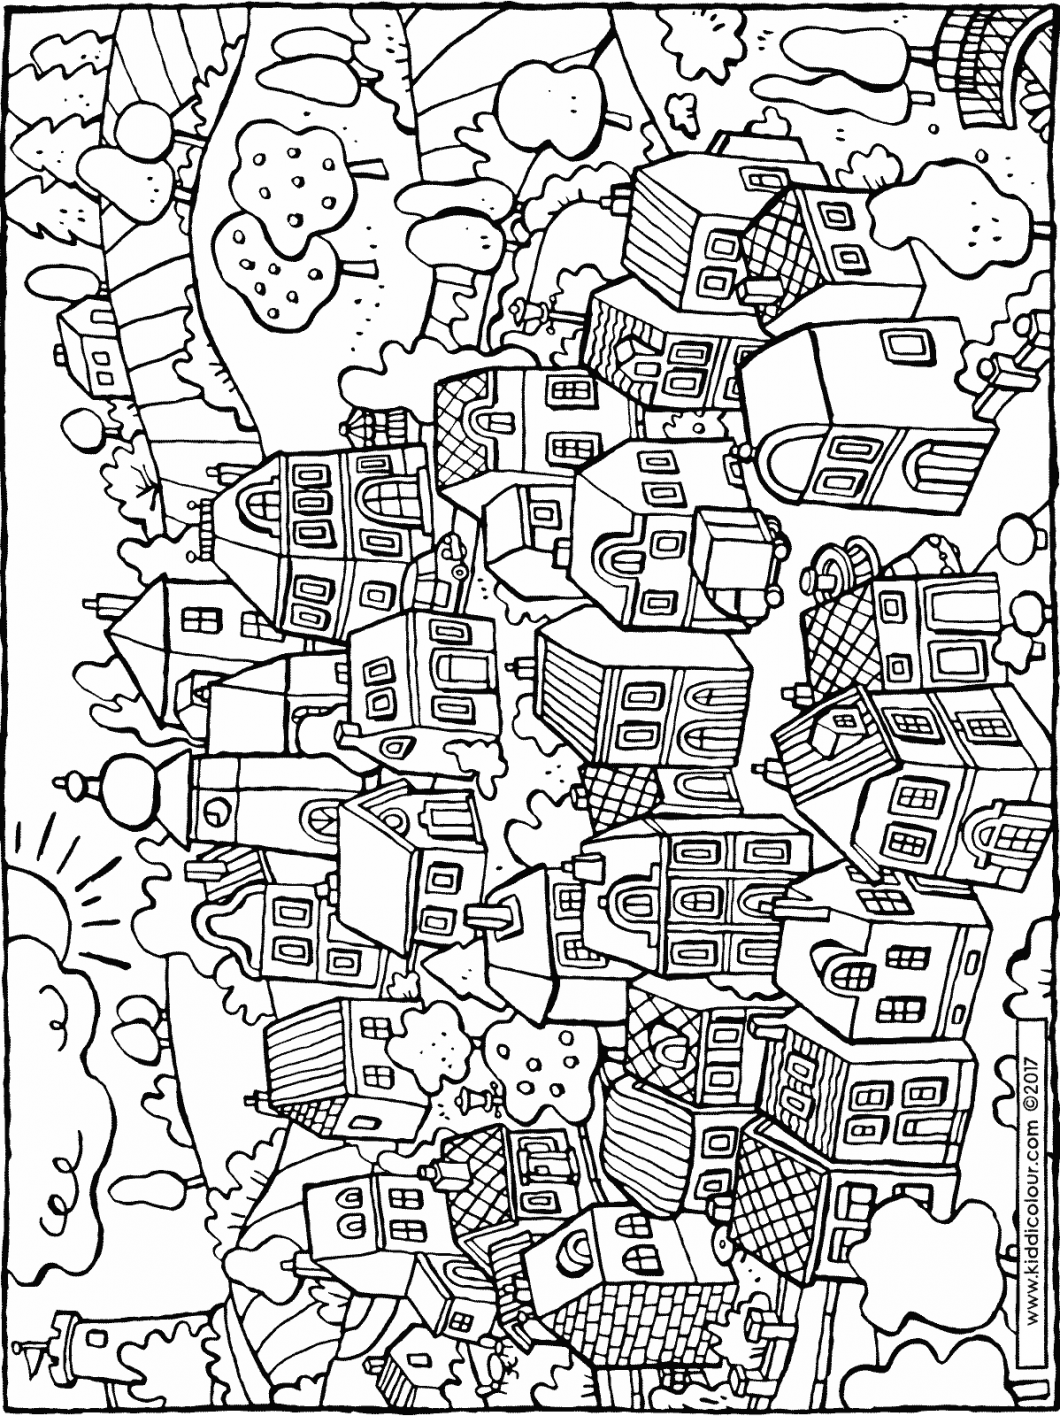 a small village colouring page drawing picture 01H